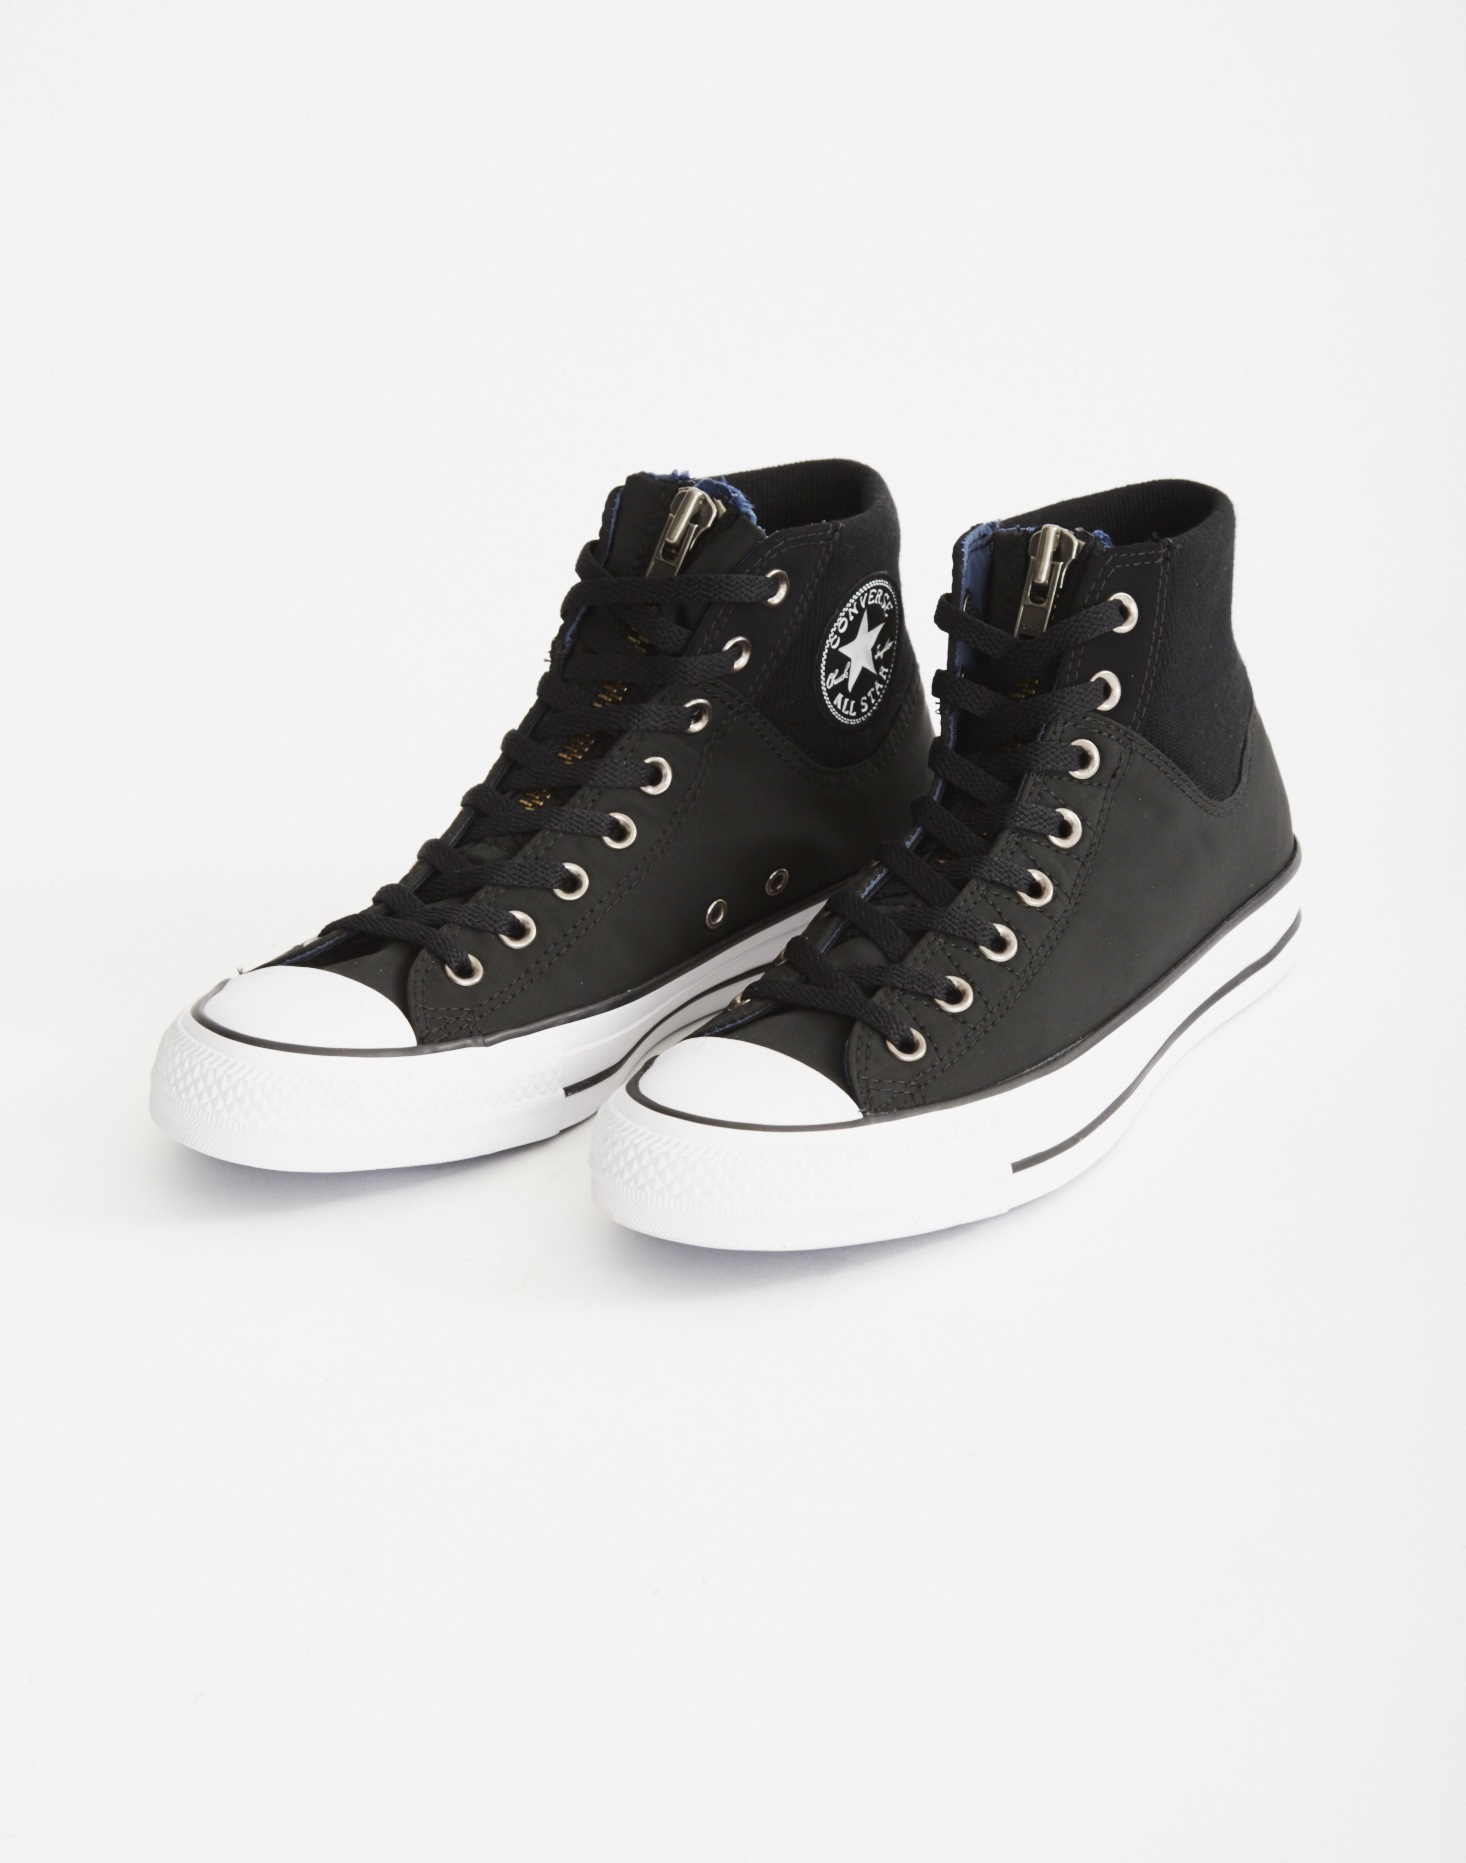 Lyst - Converse Chuck Taylor Ma-1 Zip Hi Trainer Black in Black for Men 10659c2f6